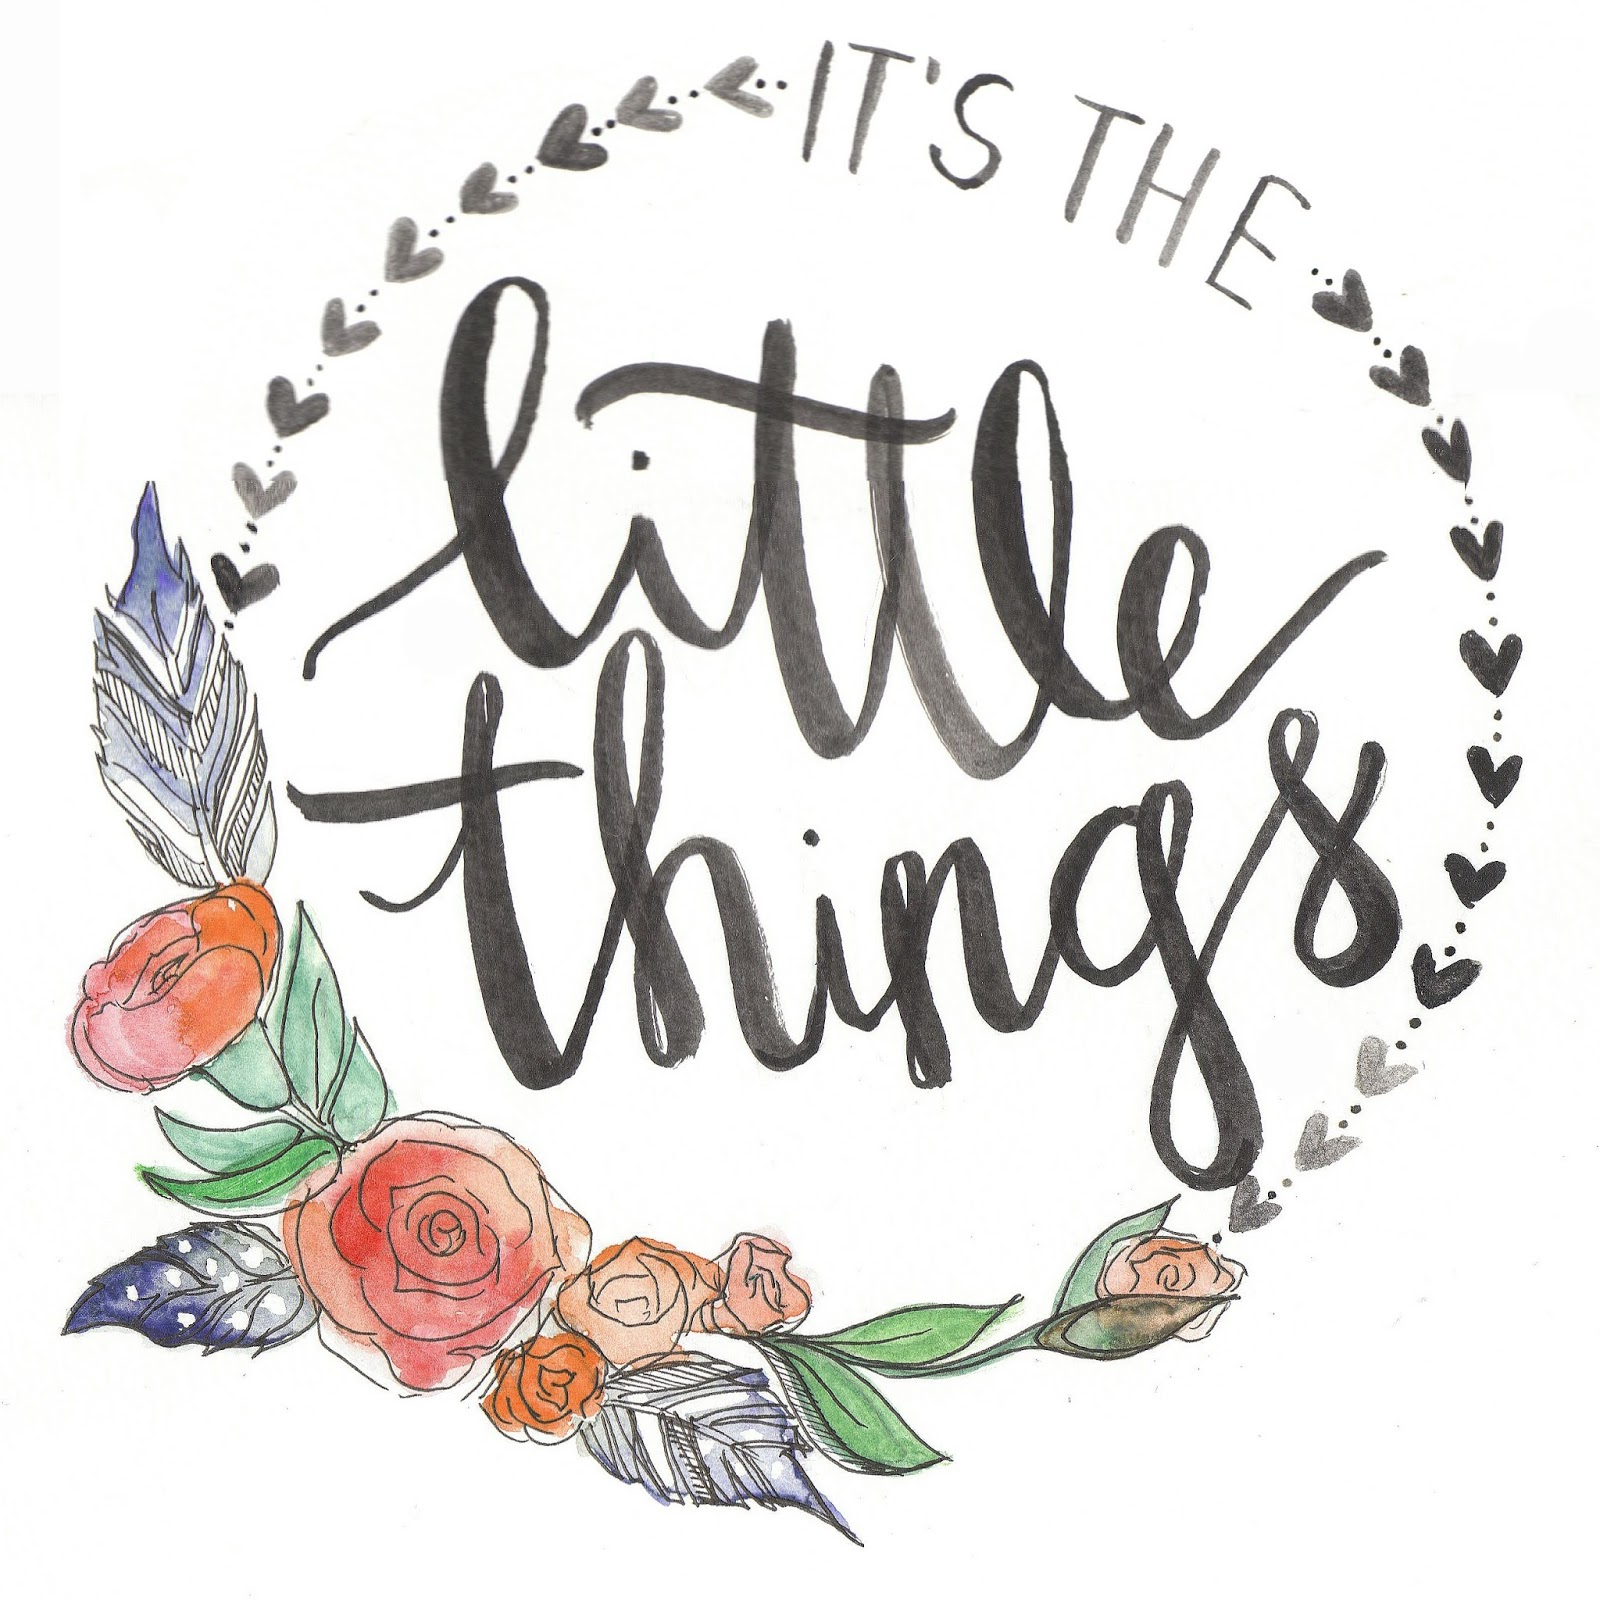 http://wordsaboutwaverly.blogspot.com/2014/01/its-little-things-week-one.html?showComment=1391008914795#c7457067036803020057